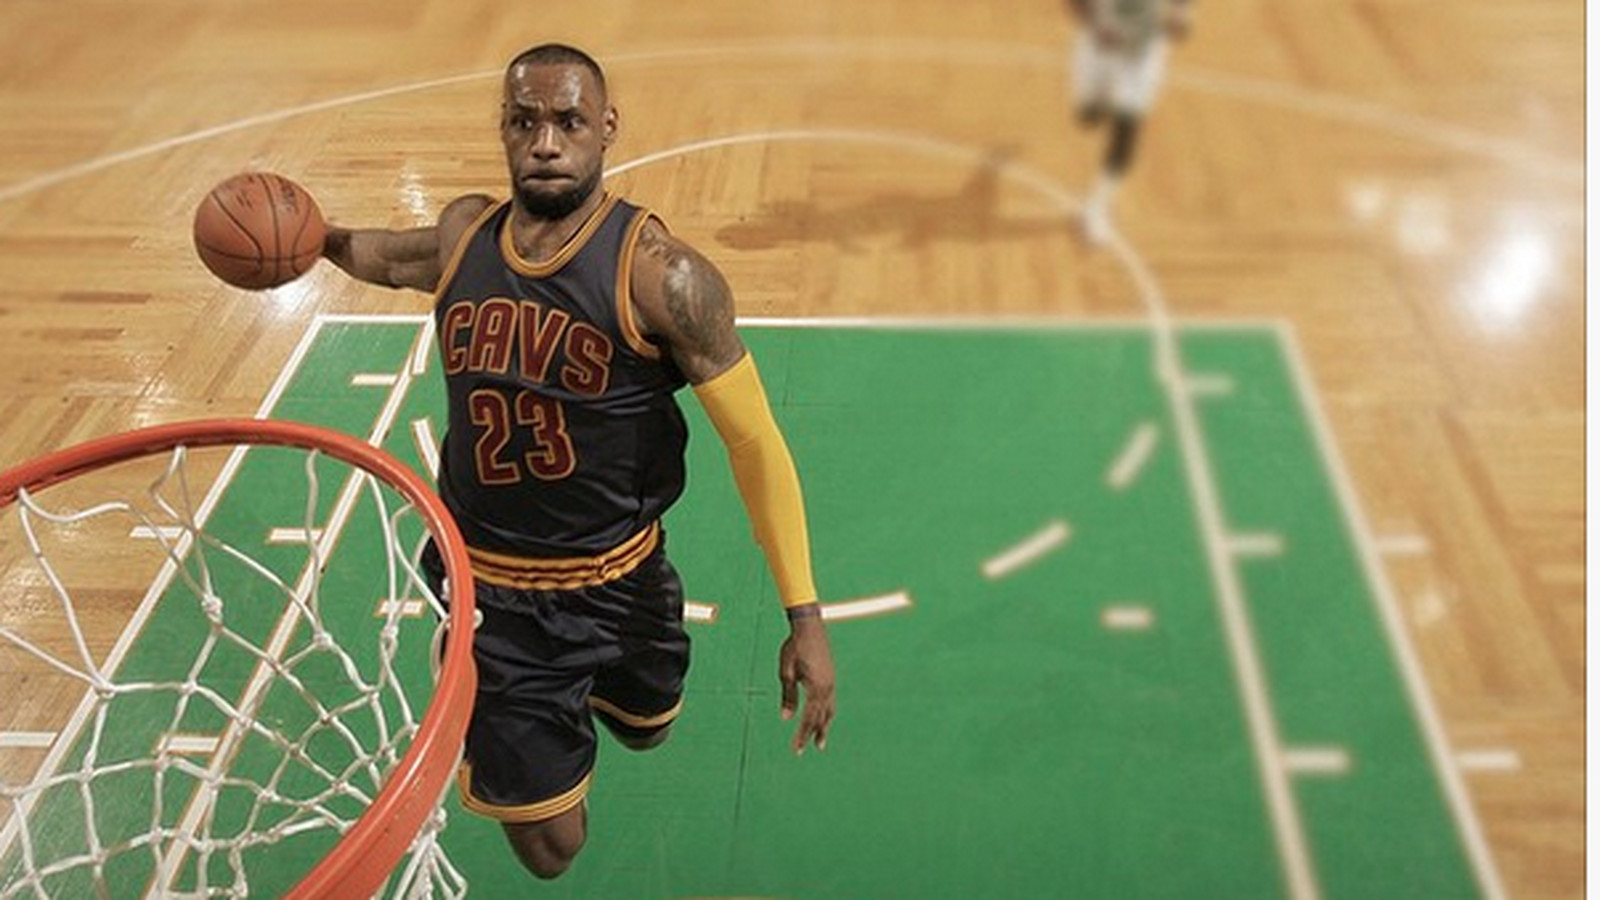 Nike Basketball took an incredible picture of LeBron's ...